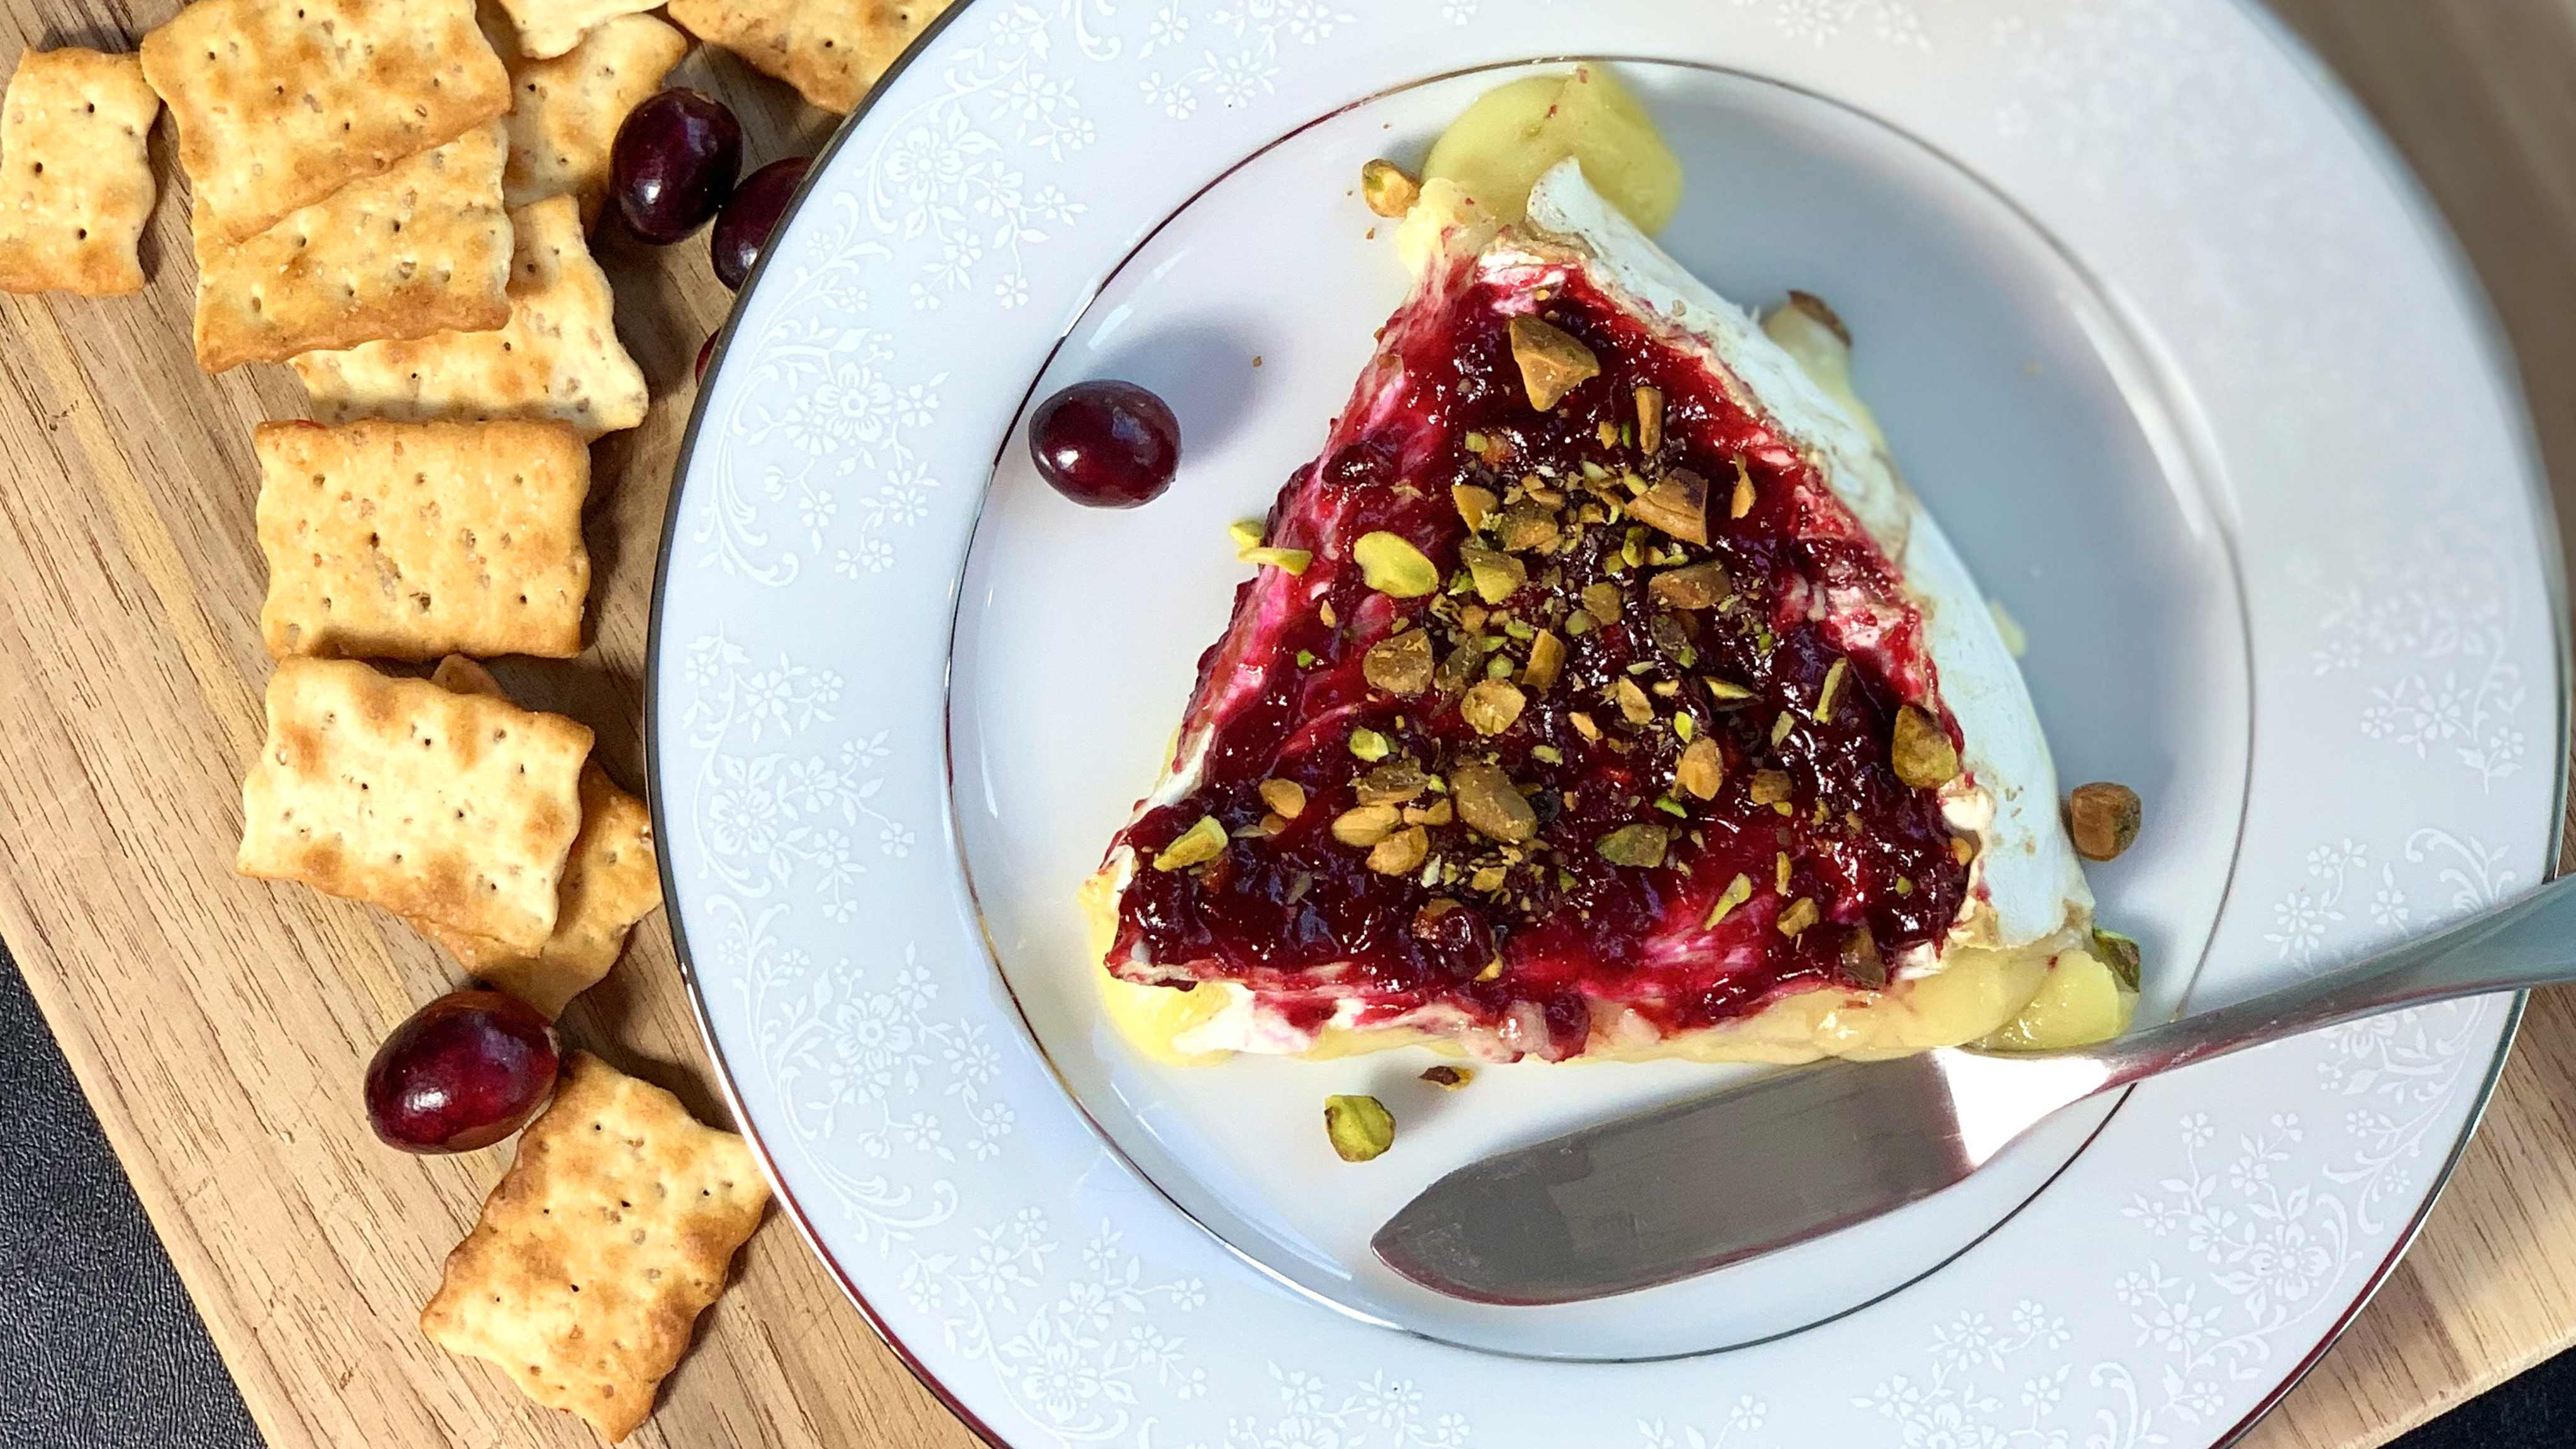 Image for Recipe Brie with Cranberry Butter and Pistachios